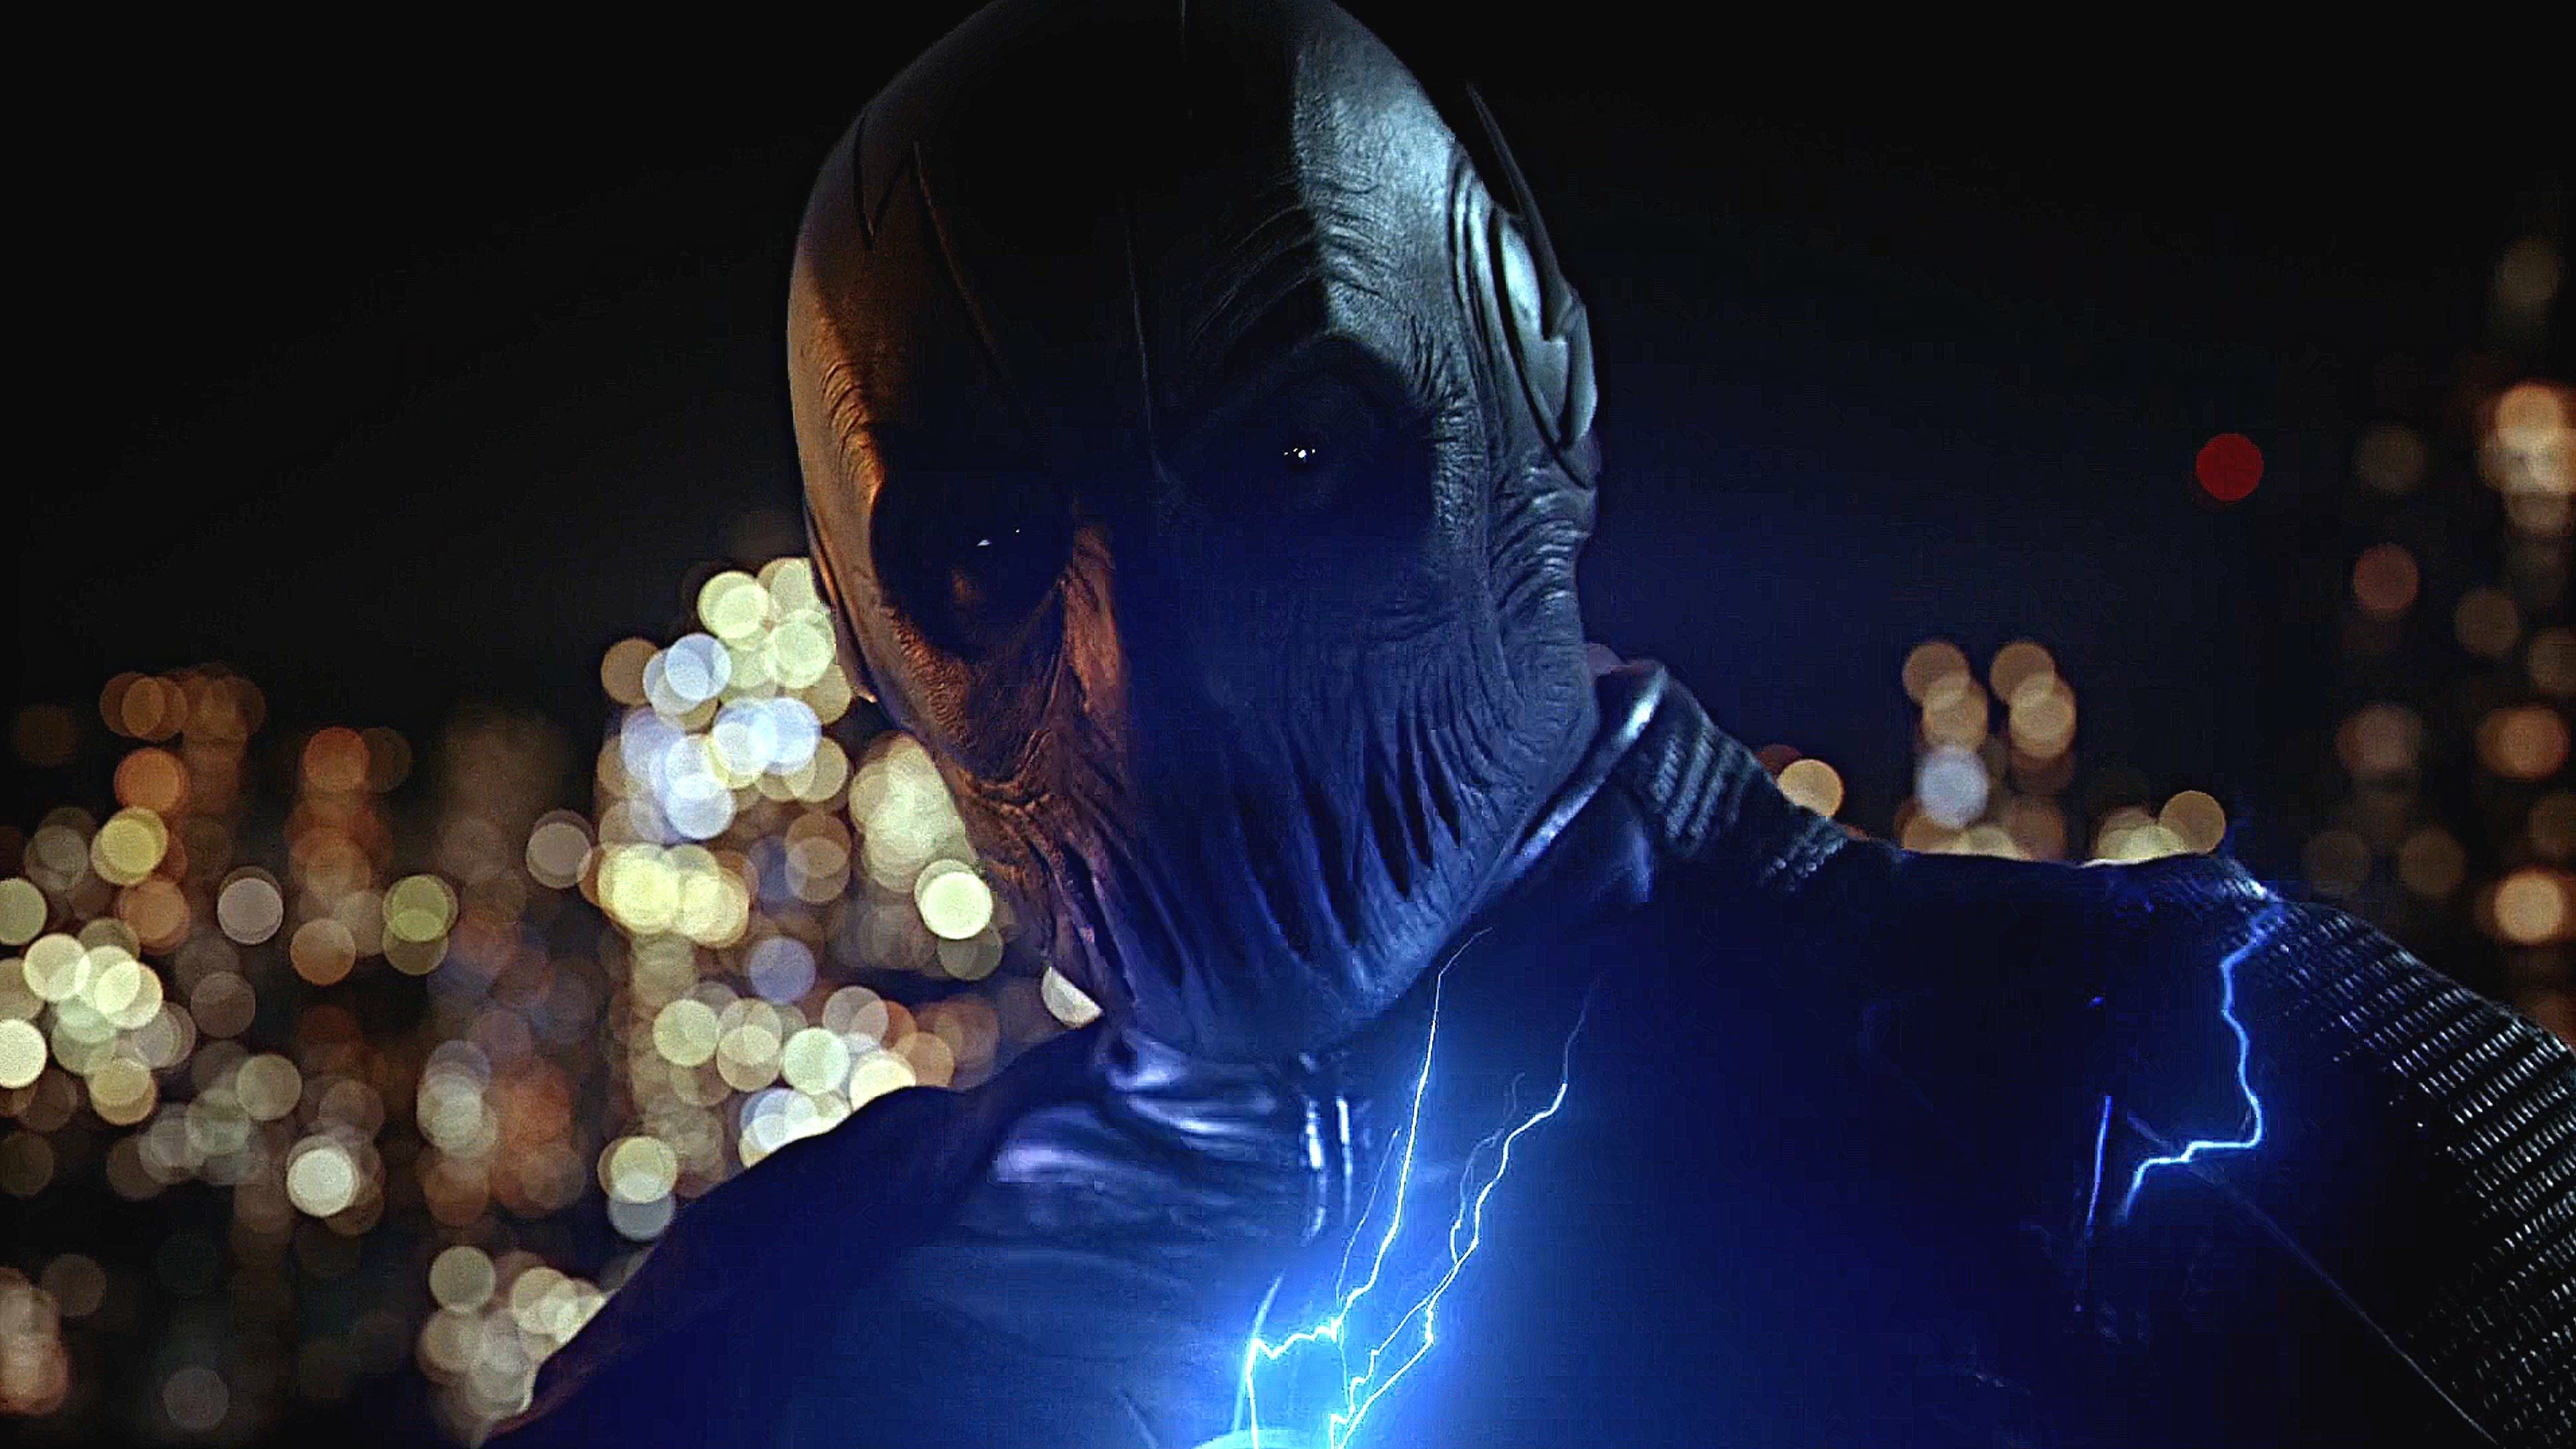 The Flash 2x06 The Flash Vs Zoom Full Fight Part 1 Ultra Hd 4k Hd Anime Wallpapers Horror Wallpapers Hd Black Hd Wallpaper